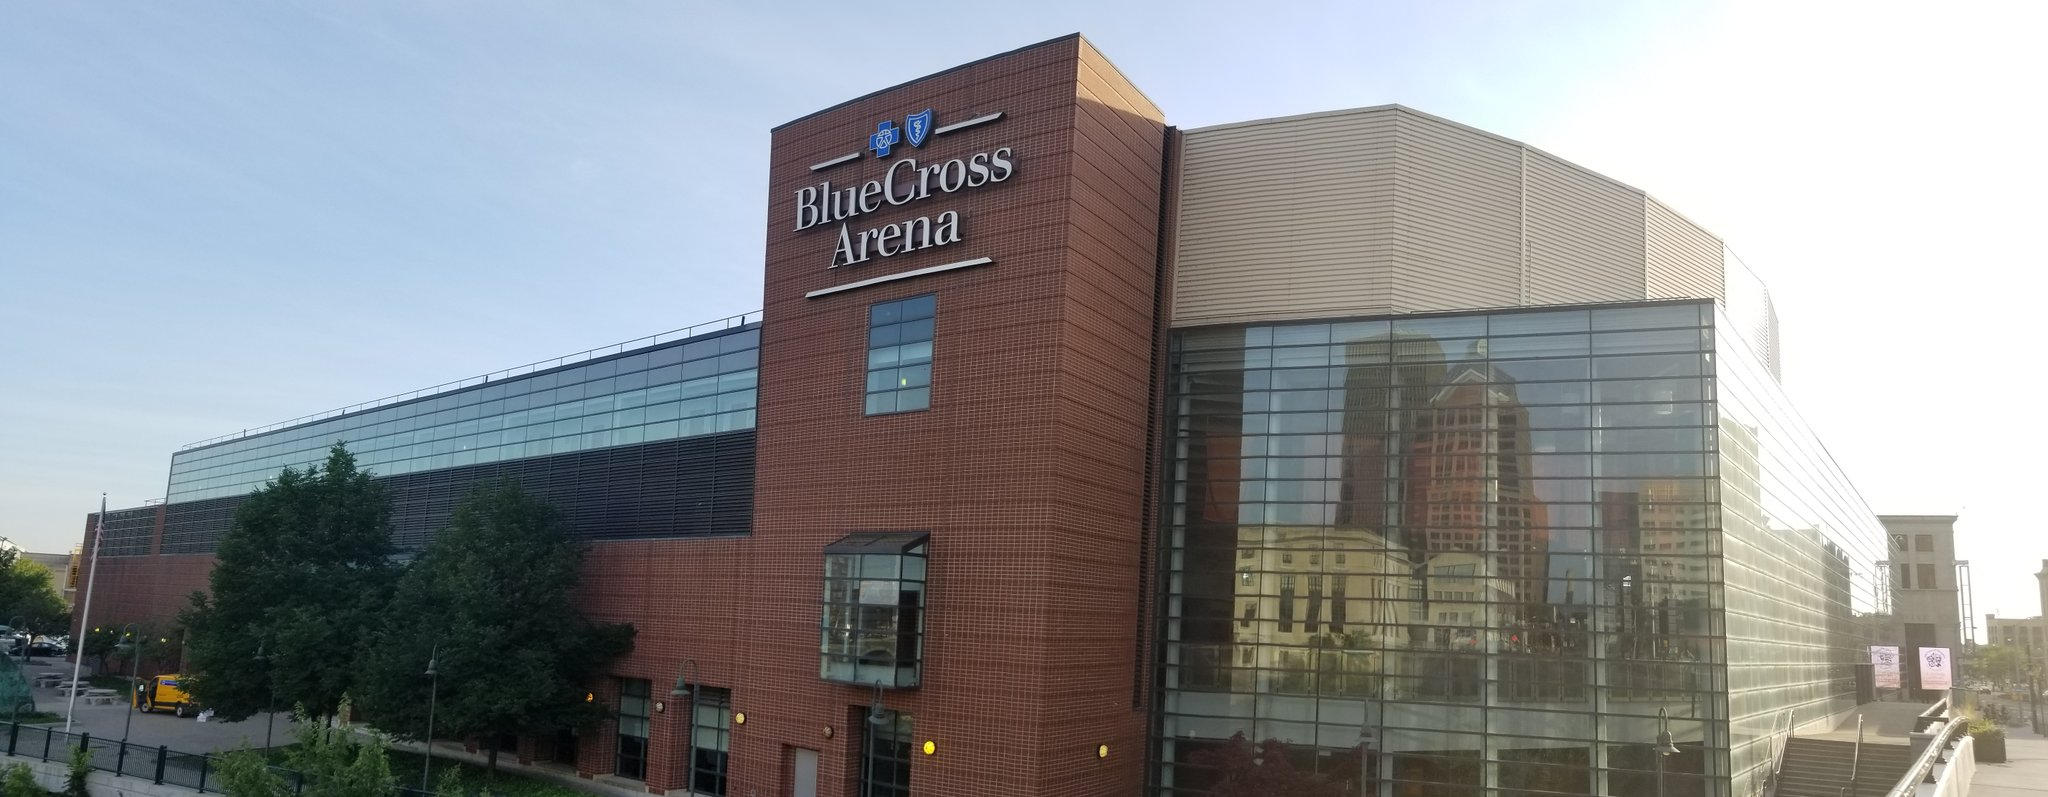 15 Year Deal Announced for Blue Cross Arena